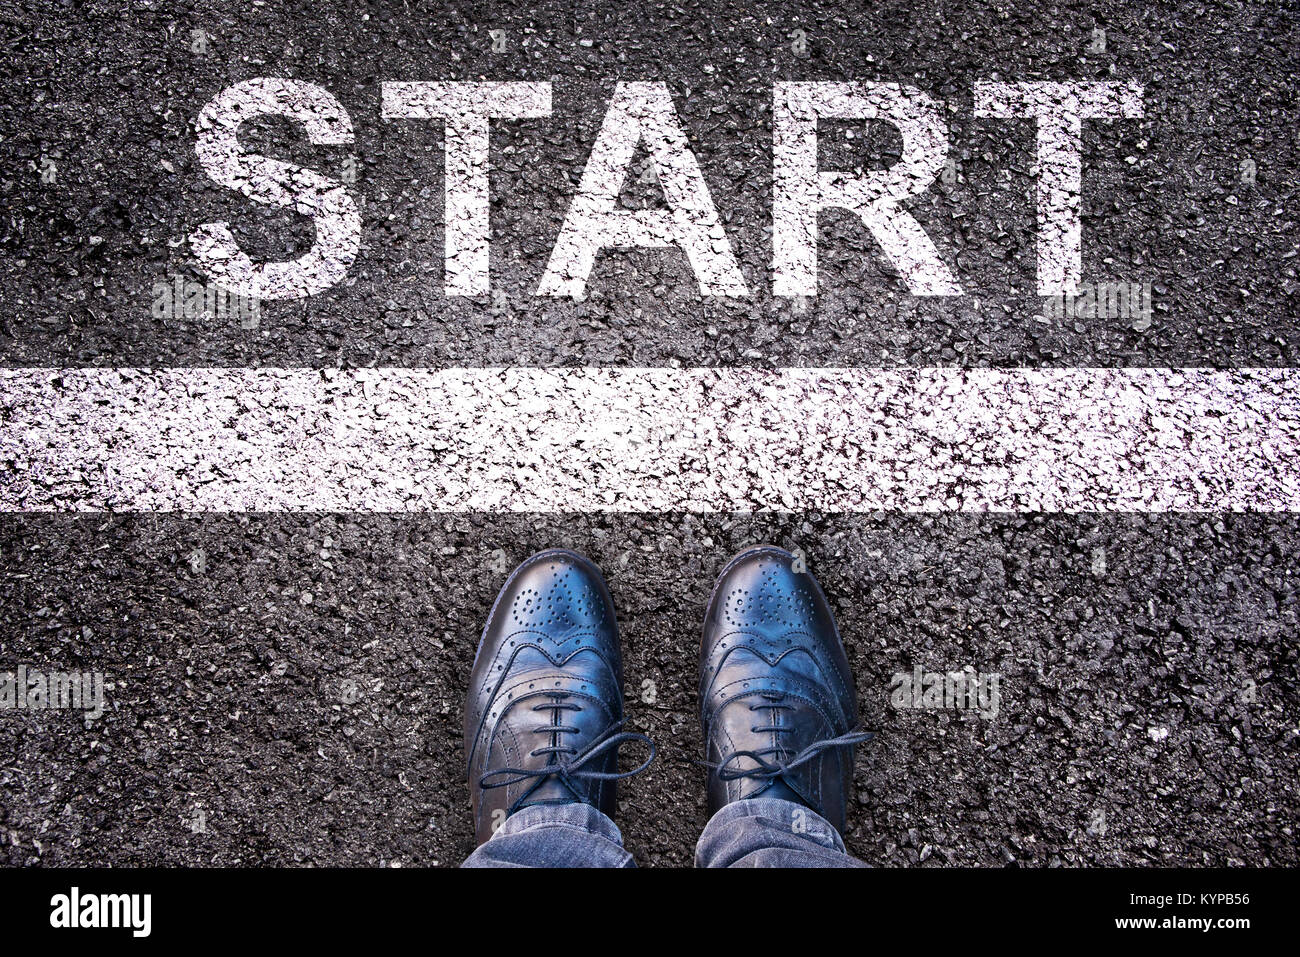 Word Start written on an asphalt road with legs and shoes - Stock Image